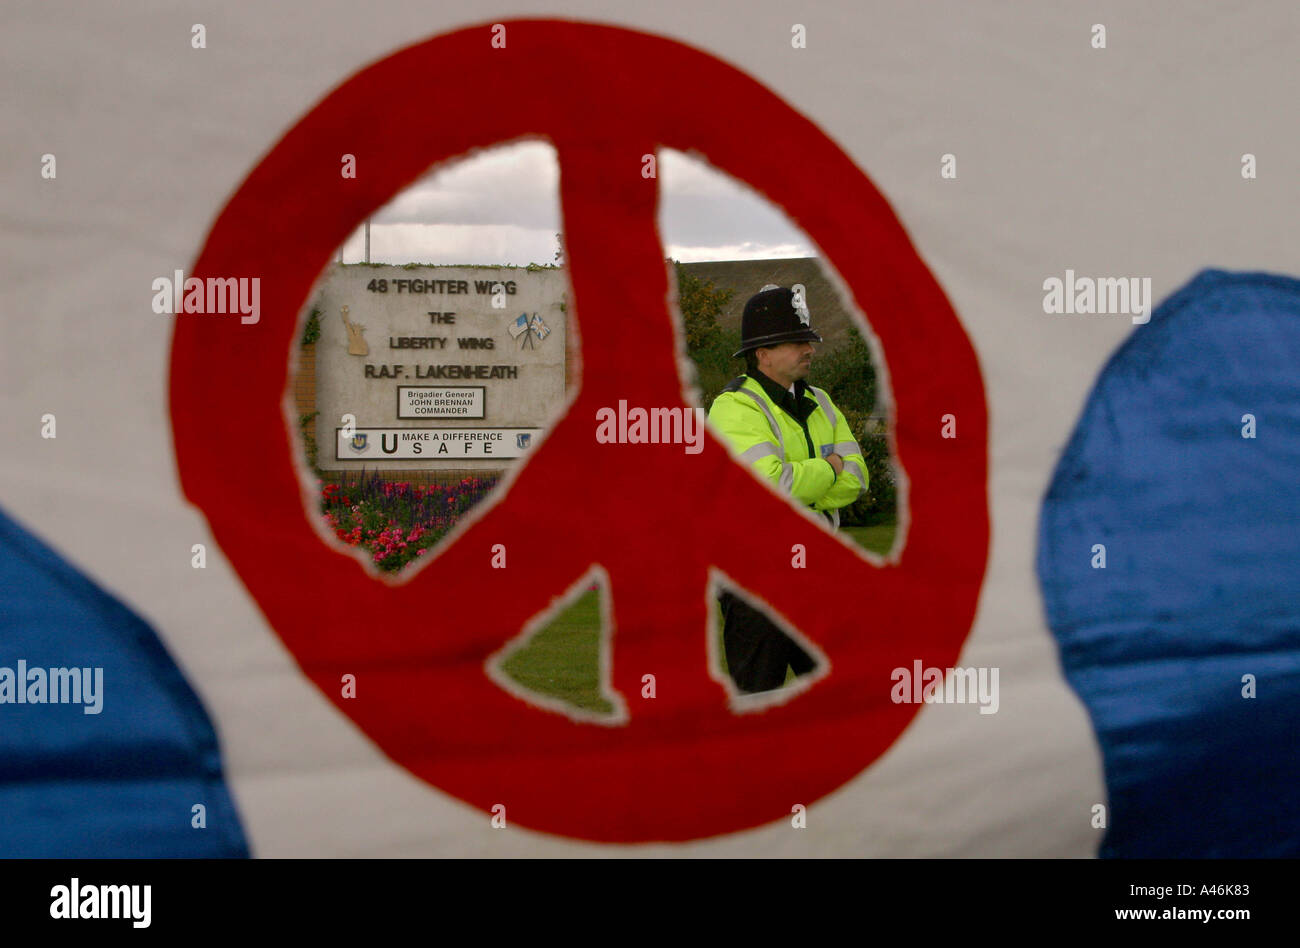 peace demonstration at lakenheath airbase a policeman at the entrance to lakenheath airbase is seen through a campaign for nuclear disarmament banner at a vigil and demonstration outside the airbase in suffolk england 7 october 2002 the airbase is the home of the united states airforce 48th fighter wing using f1 11 fighter bombers which will be deployed in any forthcoming military action against iraq the base also stores an undisclosed number of nuclear weapons - Stock Image